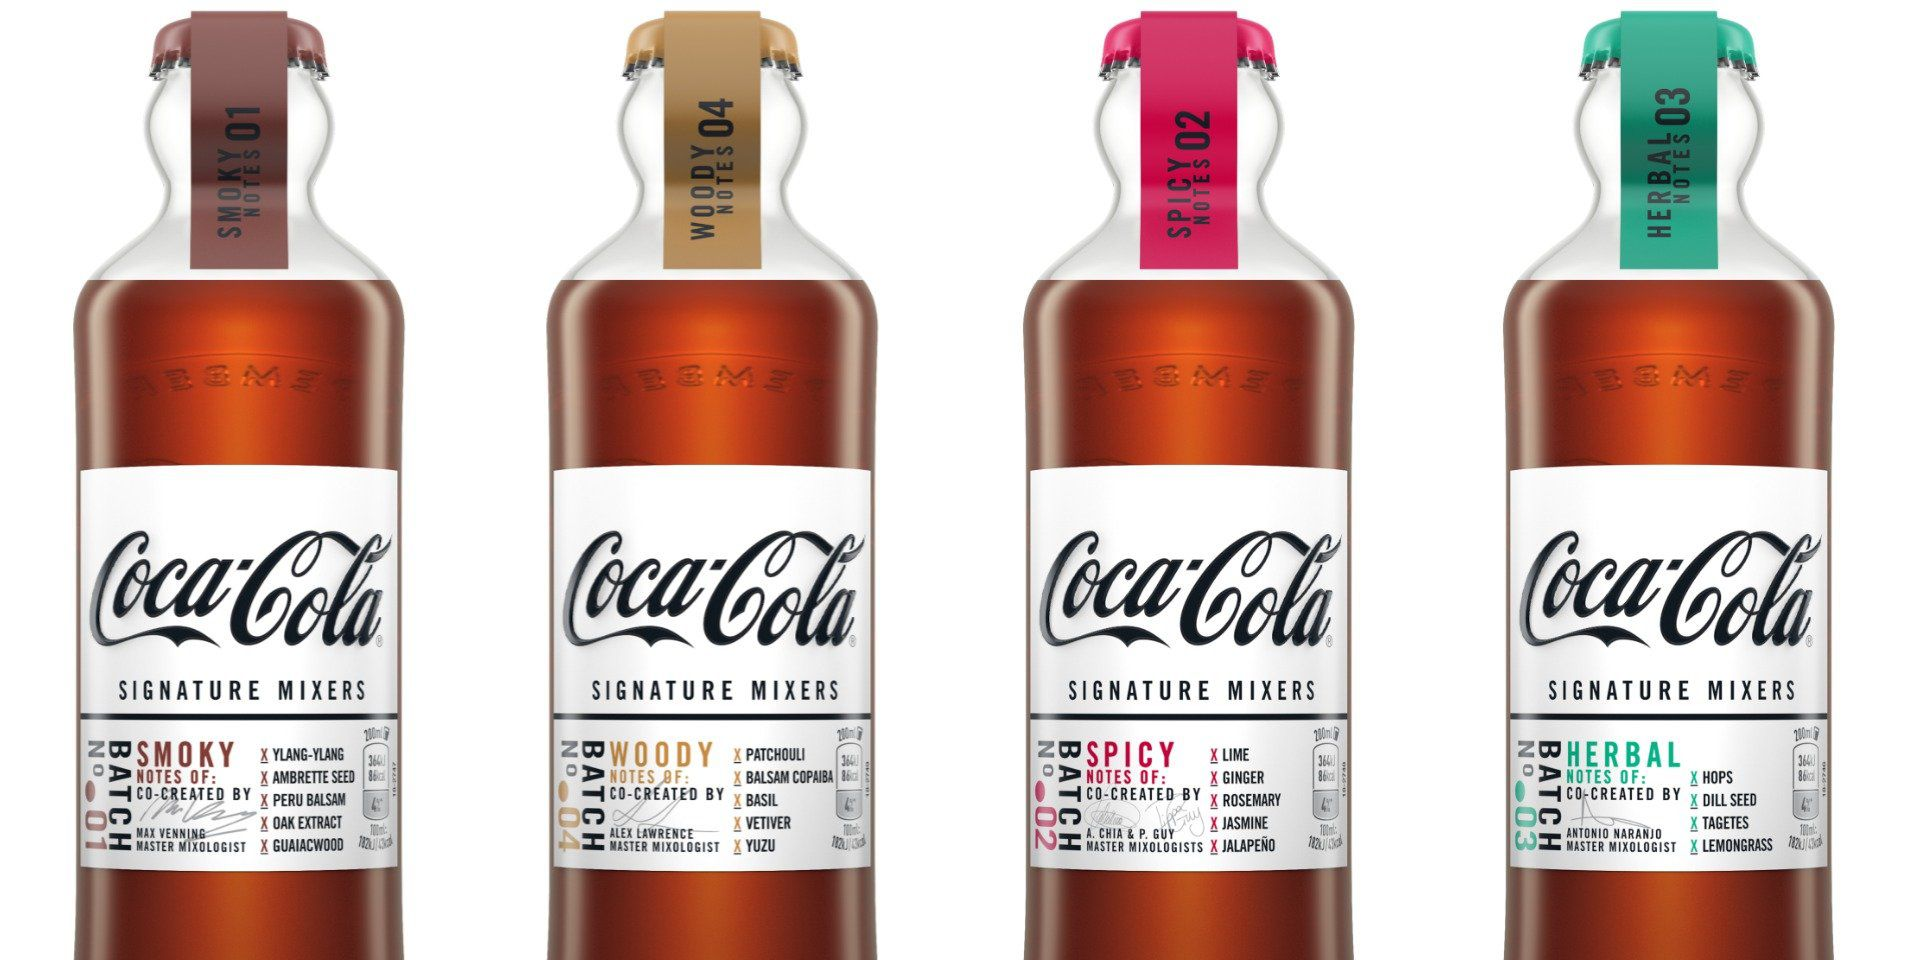 Coca-Cola – Signature Mixers project.